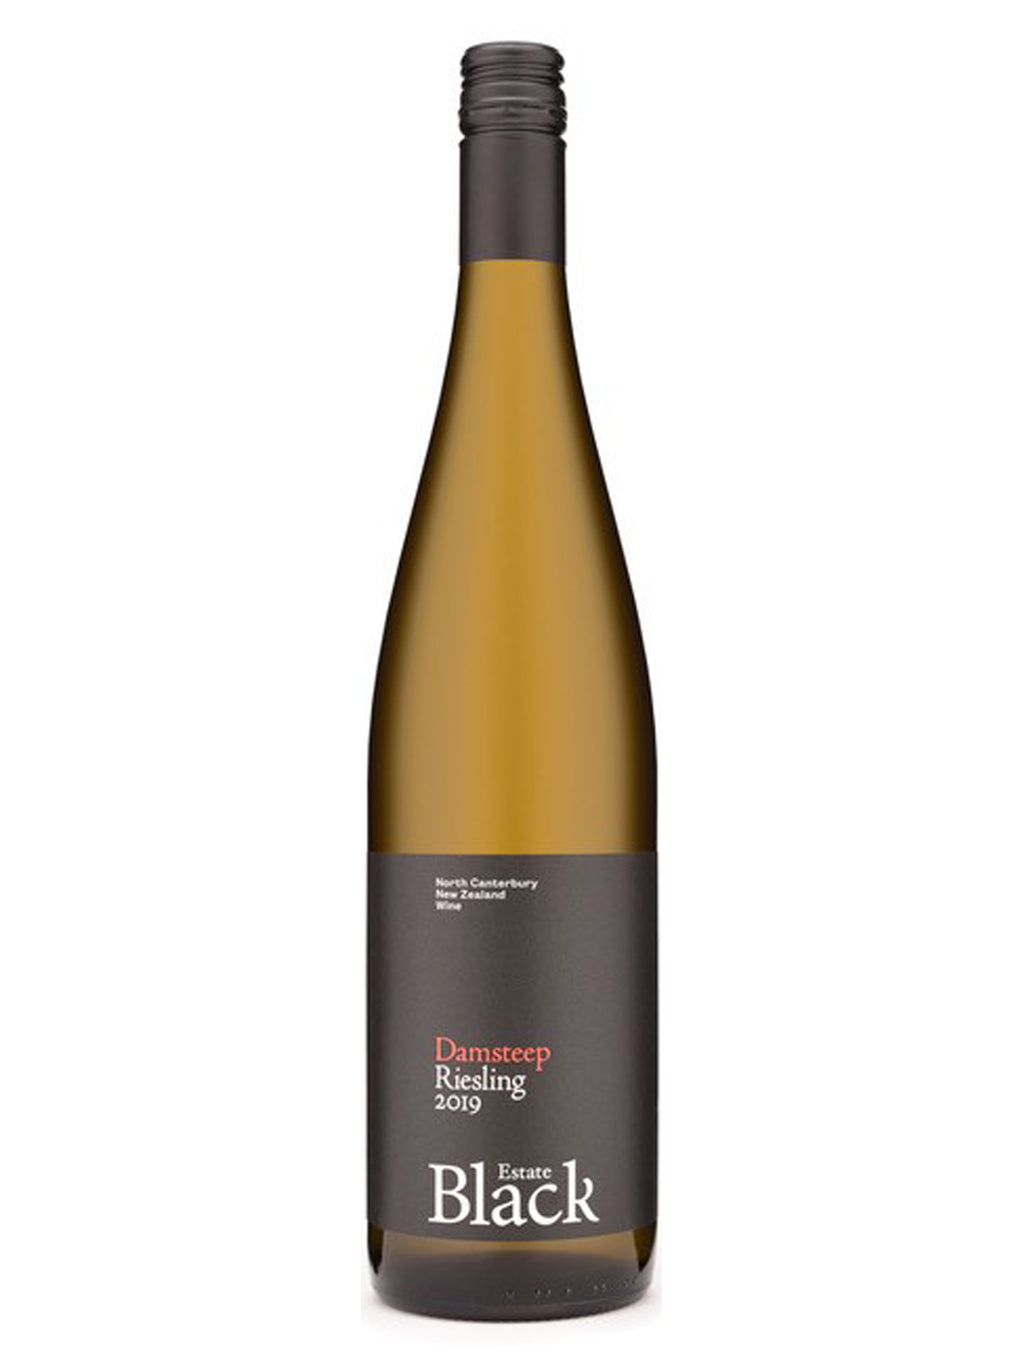 Black Estate Damsteep Riesling 2019, North Canterbury Riesling, New Zealand Wine, New Zealand Wine Store, Online Wine Store